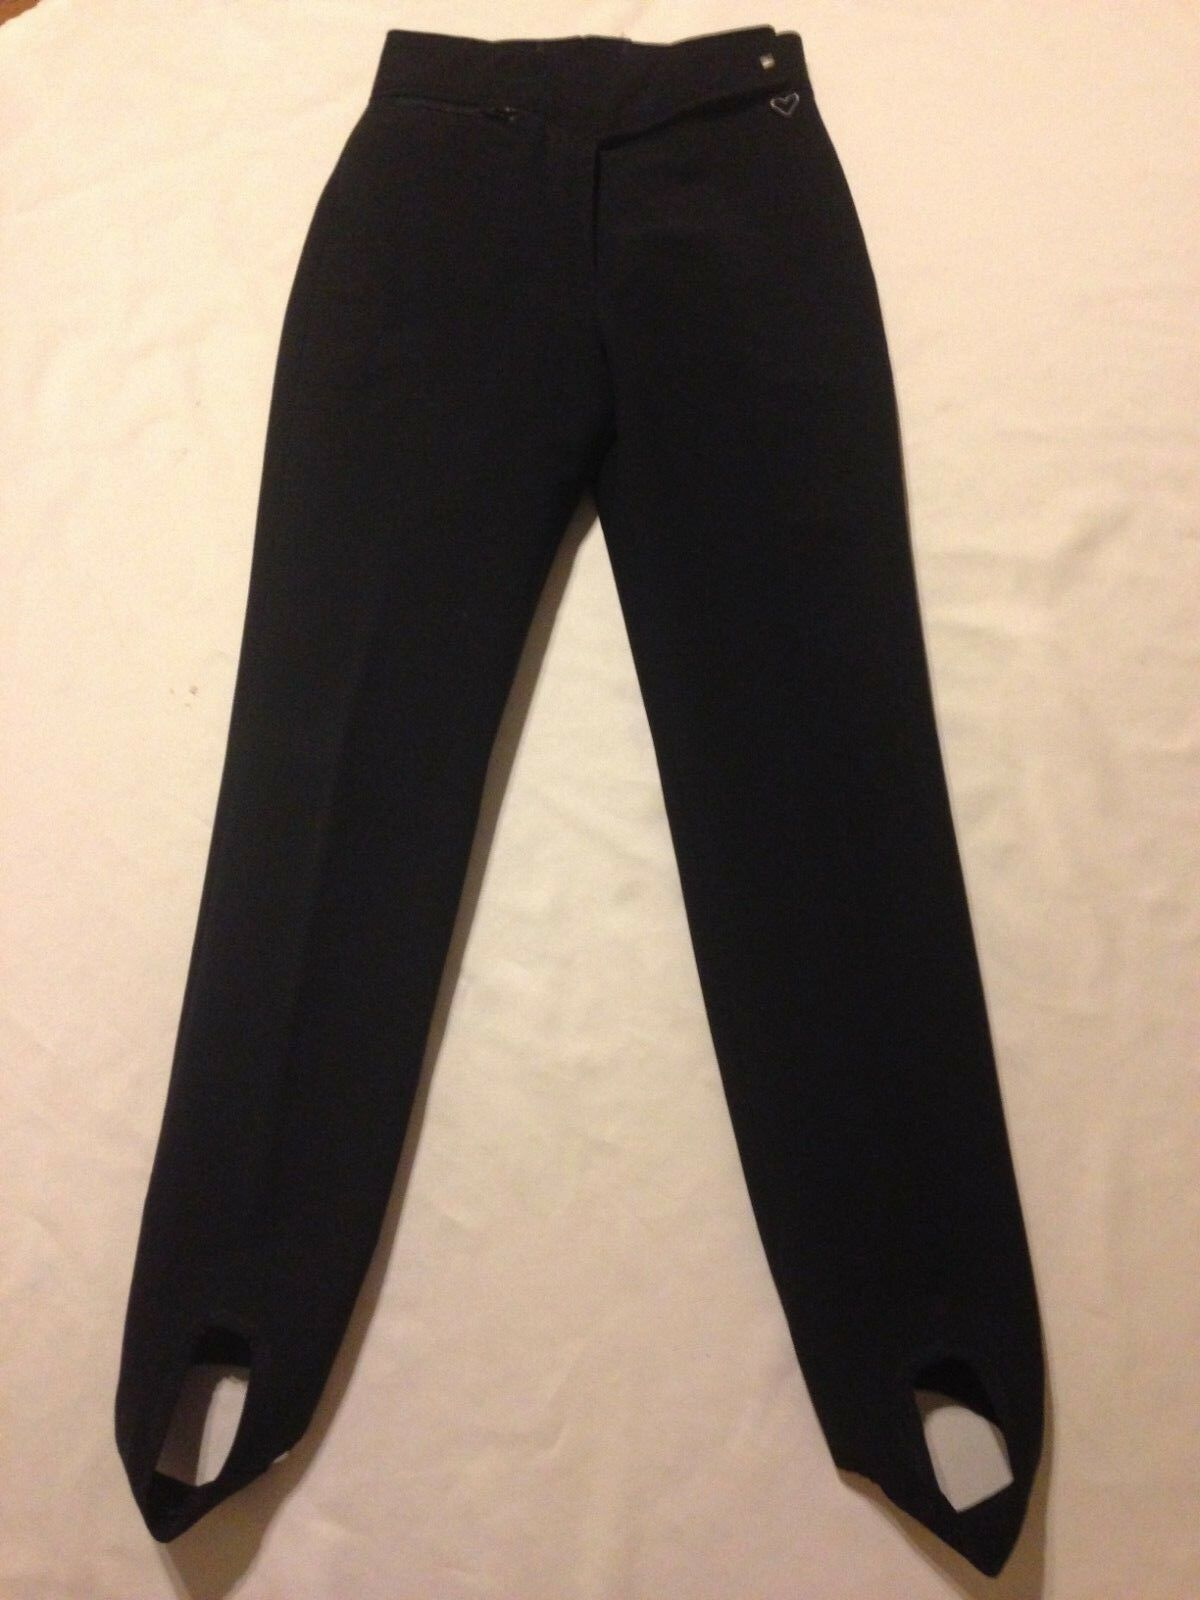 Obermeyer Original Snow Ski Snowboard Pants Womens size  6L (26 waist 31 inseam)  best offer